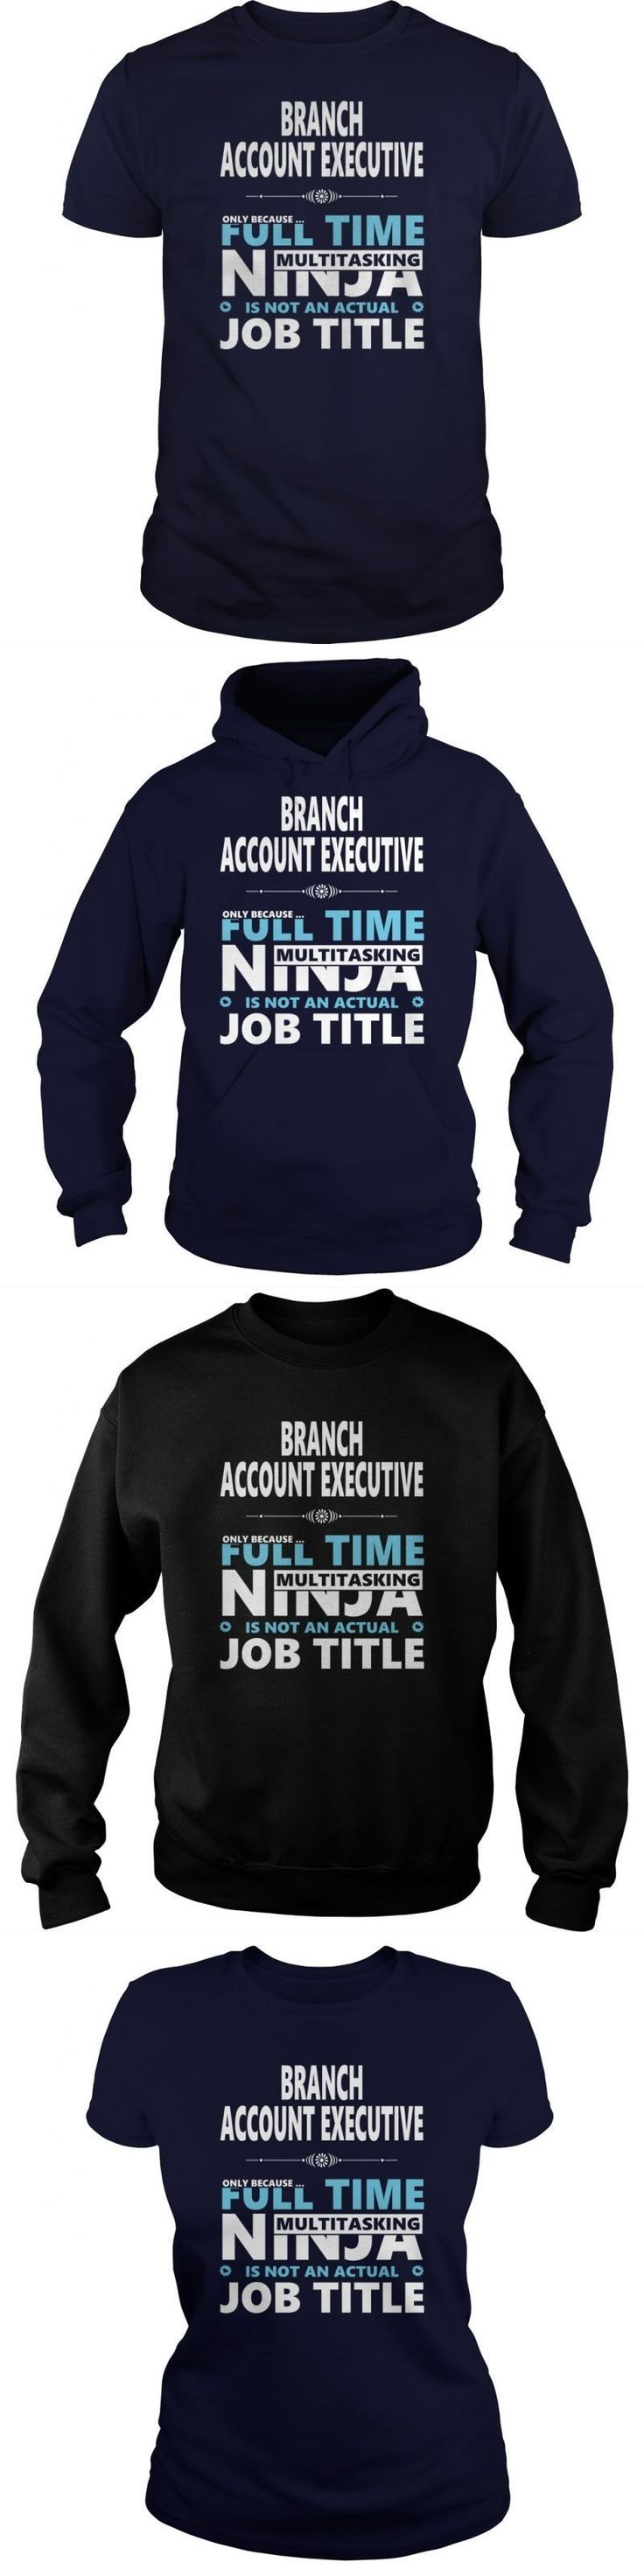 BRANCH ACCOUNT EXECUTIVE JOBS T-SHIRT GUYS LADIES YOUTH TEE HOODIE SWEAT SHIRT V-NECK UNISEX SUNFROG BESTSELLER...FIND YOUR JOB HERE:    Https://www.***/Jobs/?45454  								  								 Guys Tee Hoodie Sweat Shirt Ladies Tee Youth Tee Guys V-Neck Ladies V-Neck Unisex Tank Top Unisex Longsleeve Tee T-shirt Advertising Slogans Executive Realness T Shirt Free T Shirt Advertising Executive Summary For T-shirt Business